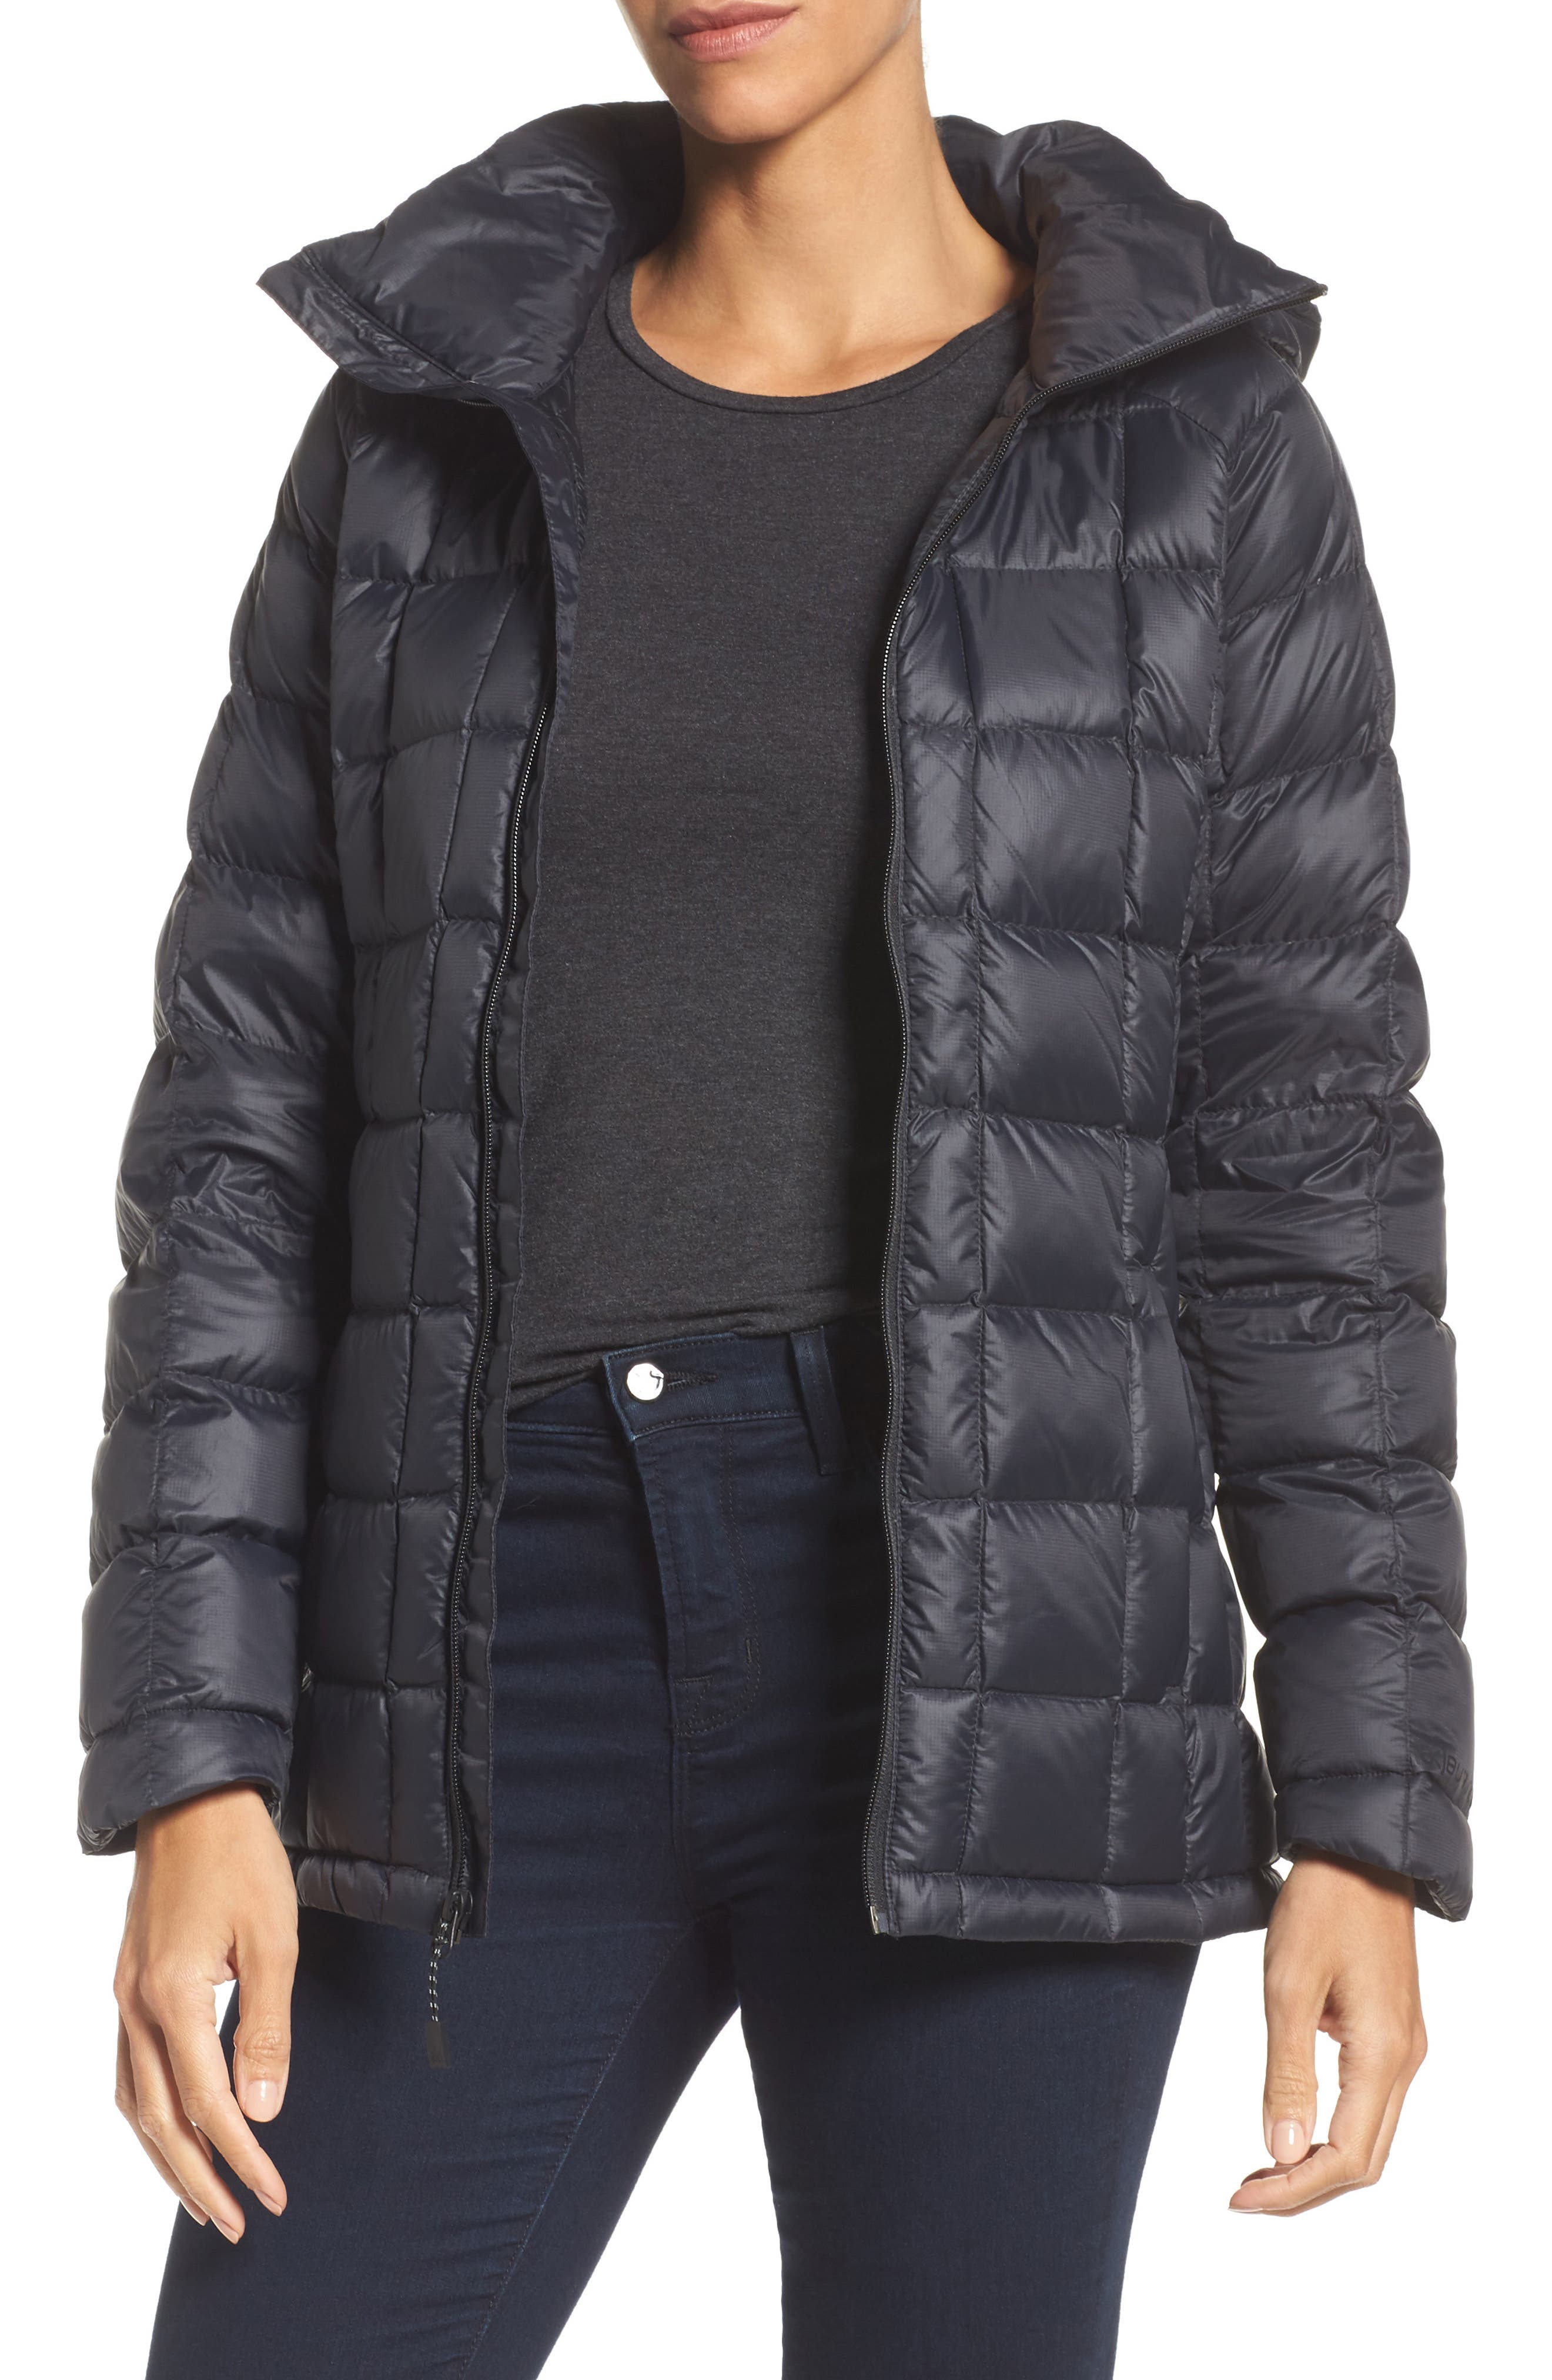 AK Baker Waterproof Quilted Down Insulator Jacket with Removable Hood,                         Main,                         color, True Black